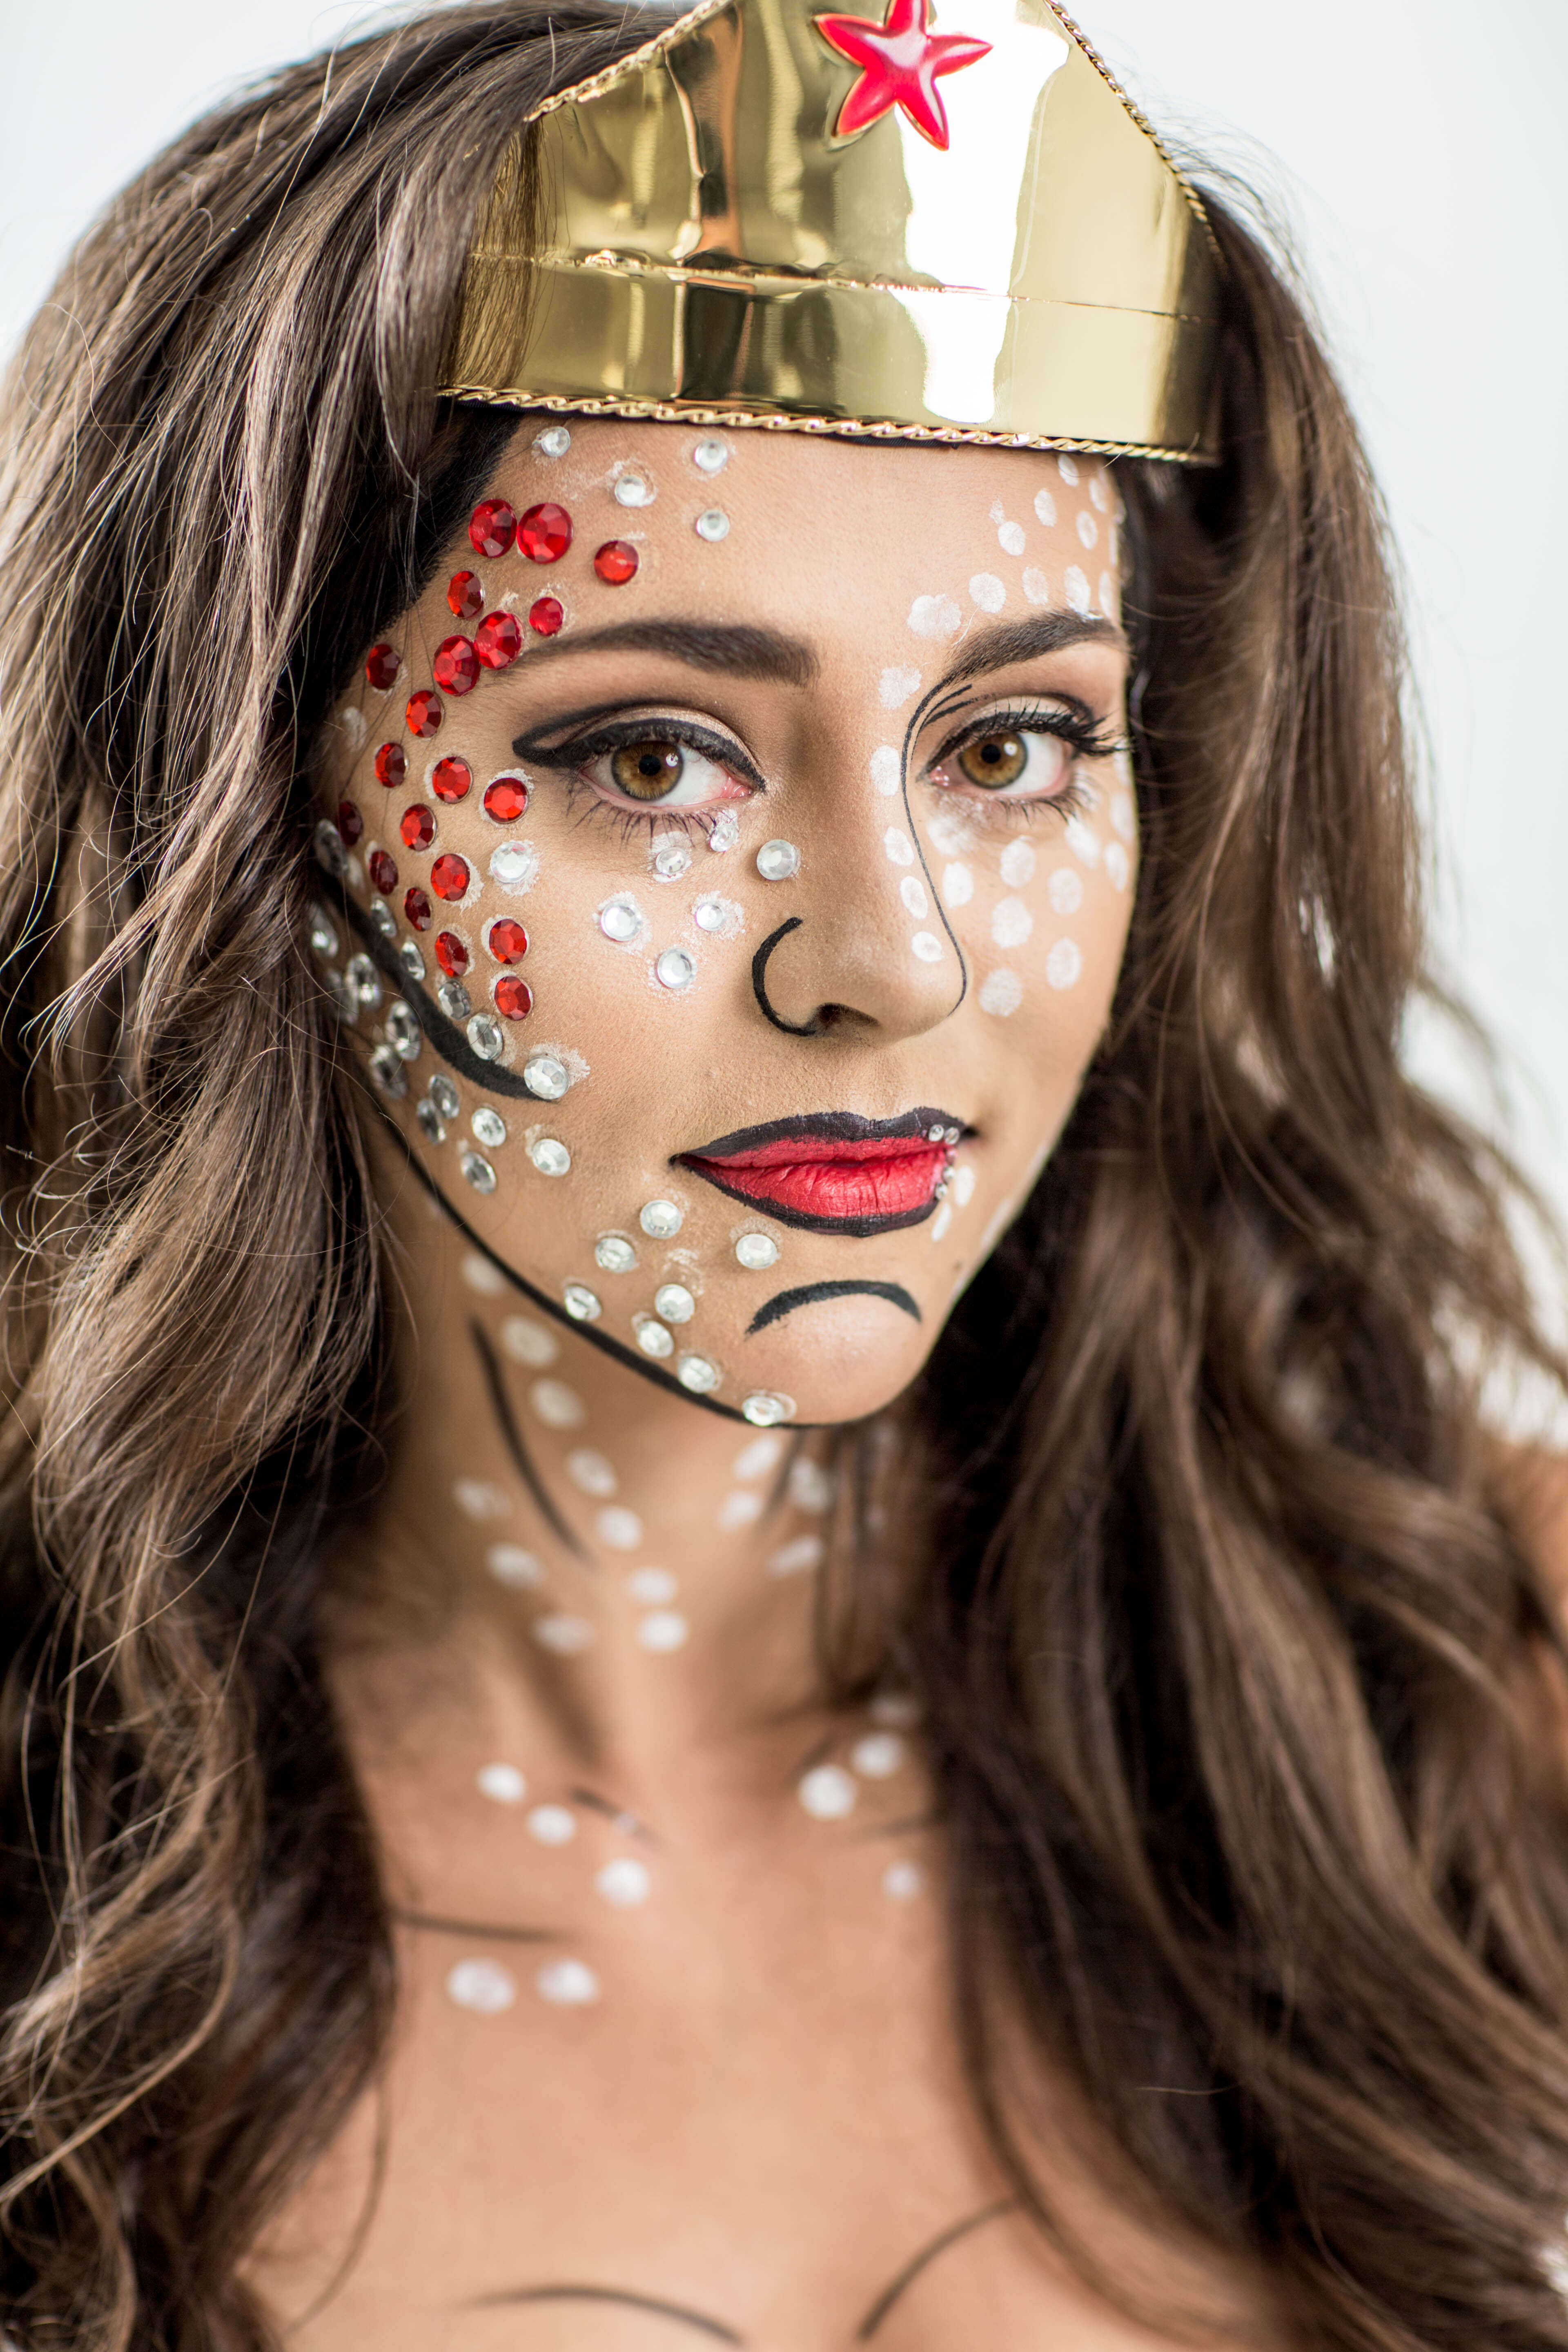 DIY Wonder Woman Costume With Pop Art Makeup Tutorial - Halloween Costumes Blog